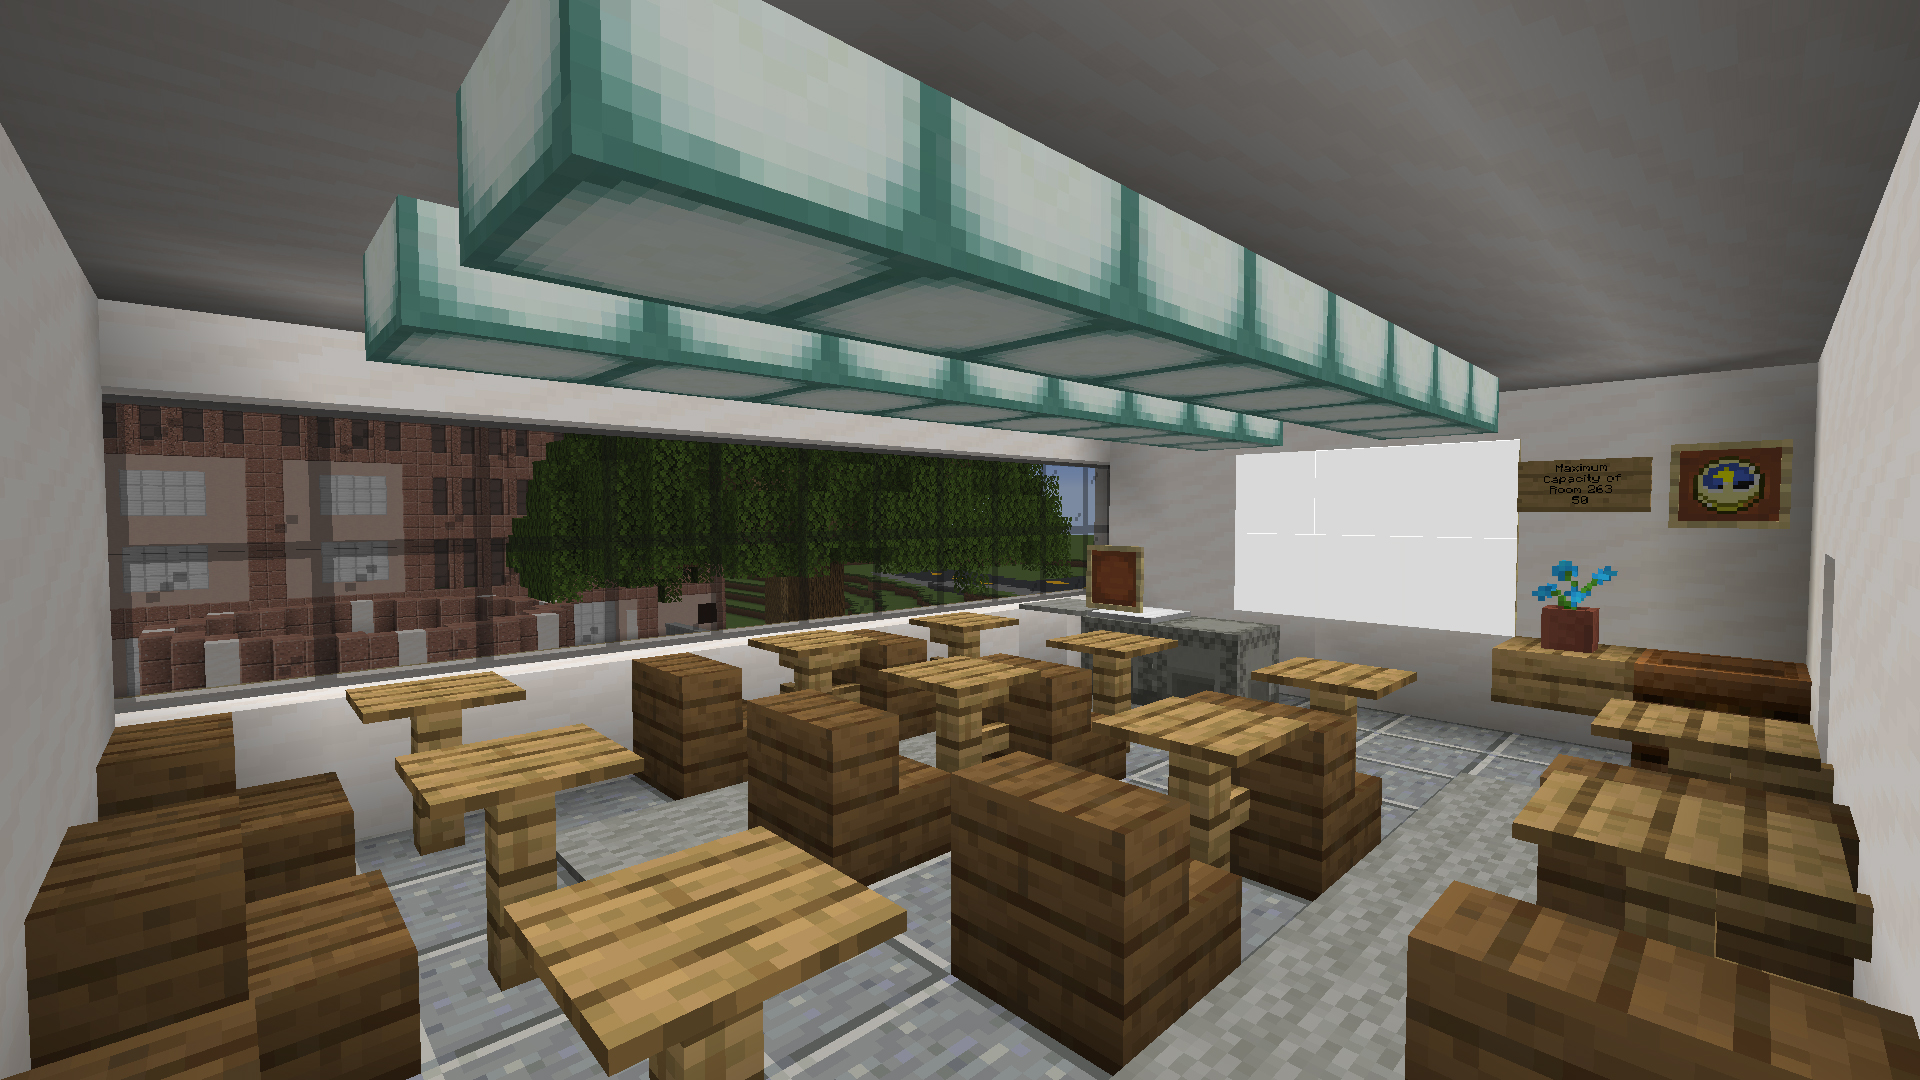 The interior of Building 9 re-imagined in Minecraft.